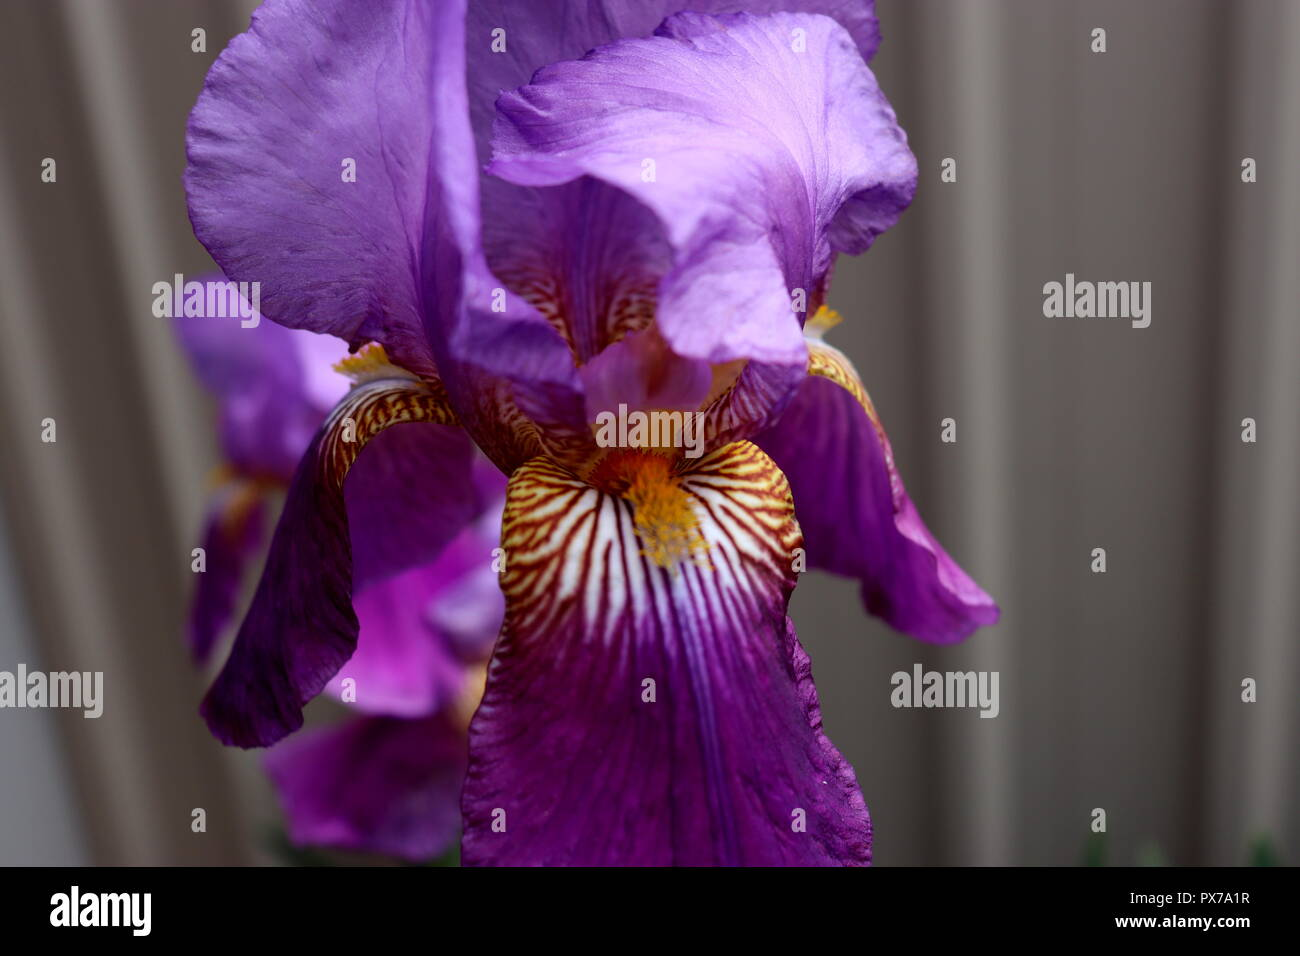 Close Up Royal Purple Iris Photo: taken in a backyard garden, this picture would look great on calendars, cards, or anything else. Stock Photo